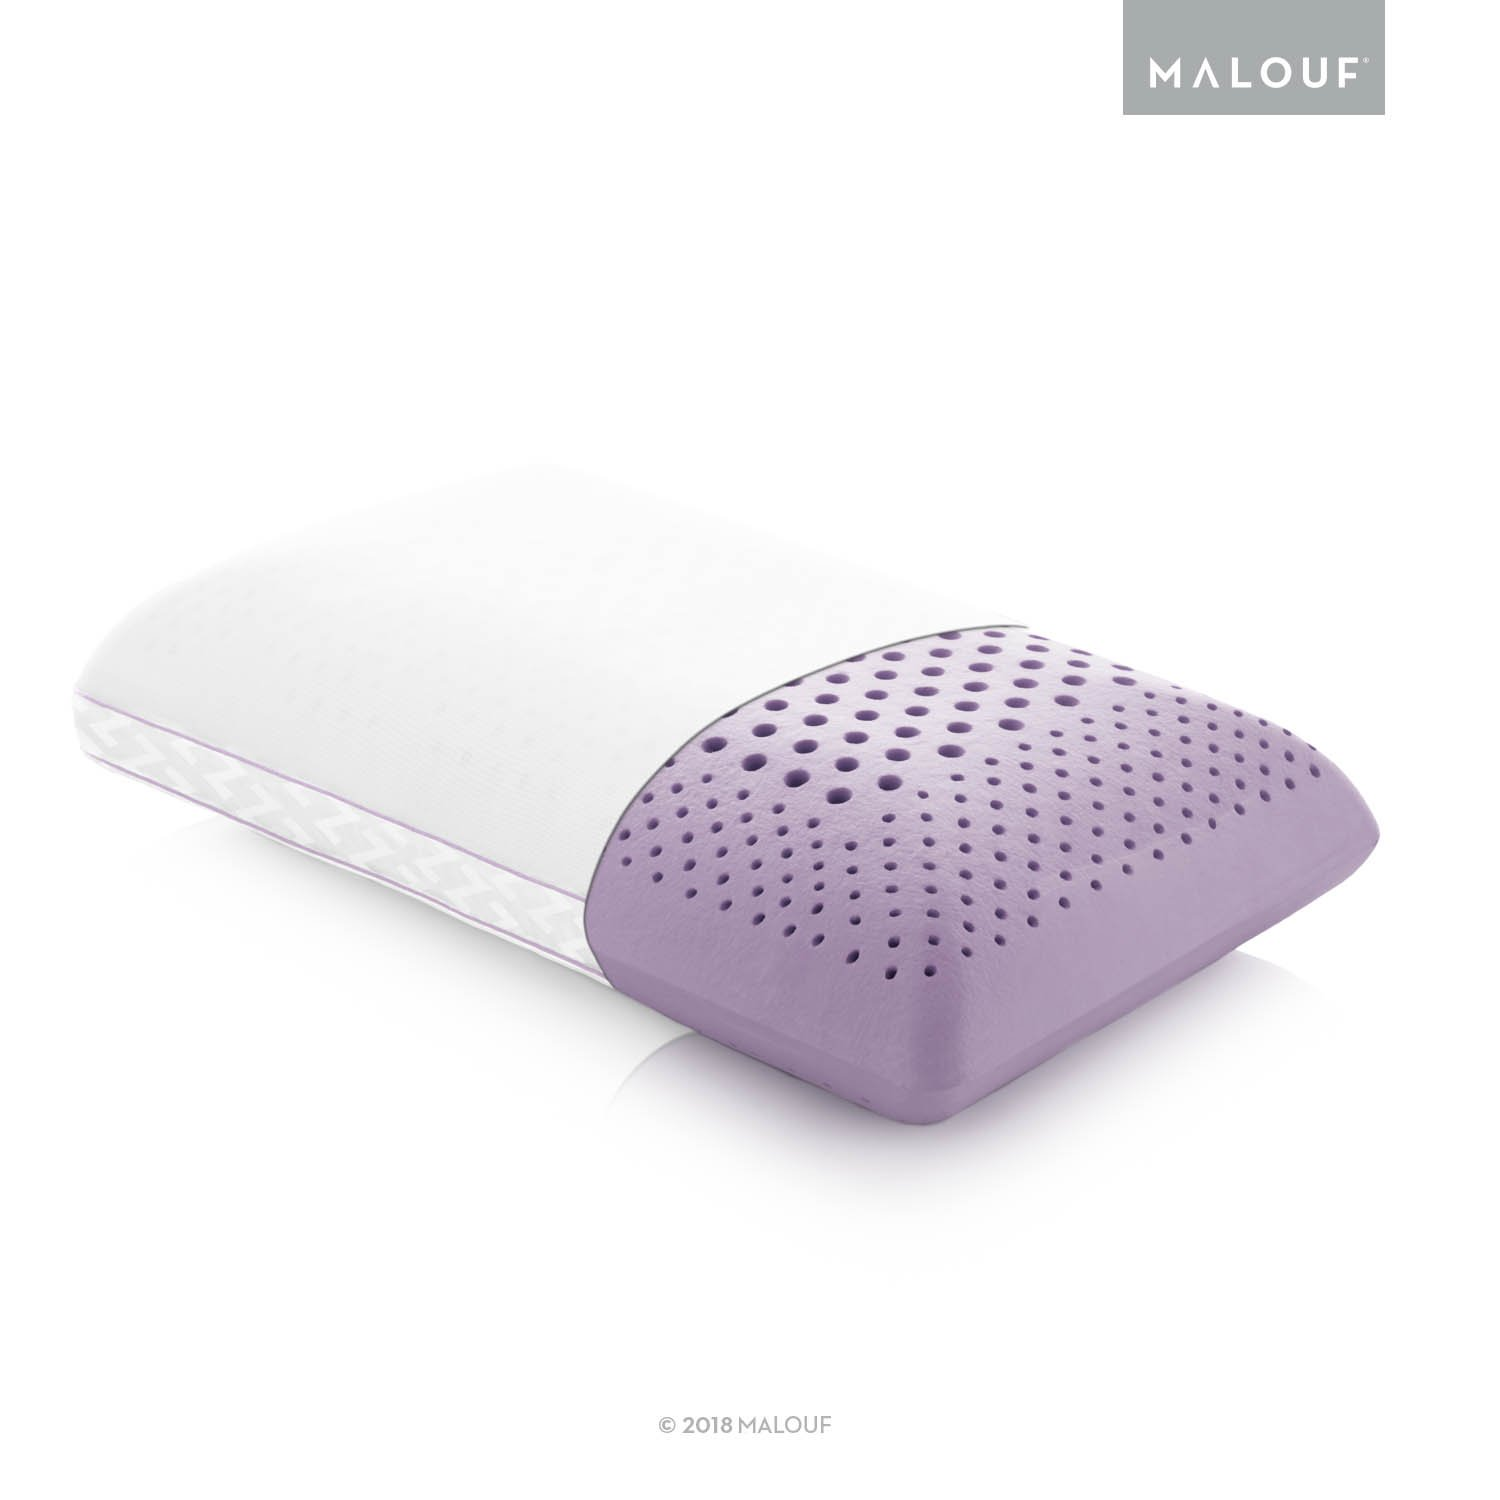 Z Zoned ACTIVEDOUGH Pillow Infused with All Natural Lavender Oil - New ACTIVEDOUGH Formula is Responsive, Supportive, and Plush - Mid Loft - Queen